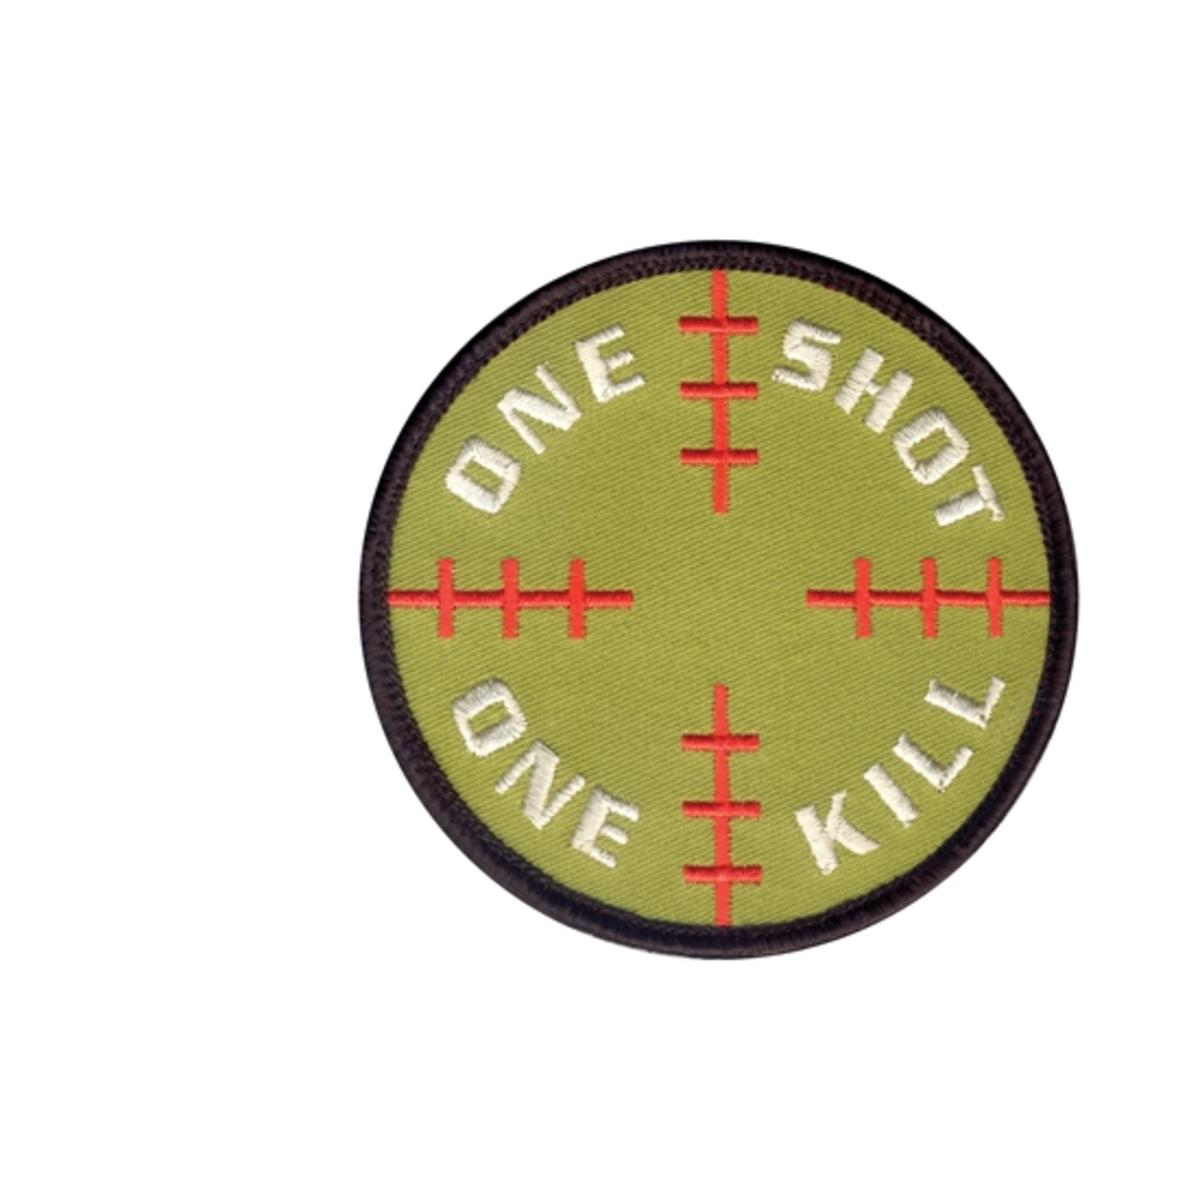 """Rothco One Shot, One Kill 3.25"""" Patch with Hook Backing, Sniper Crosshairs"""